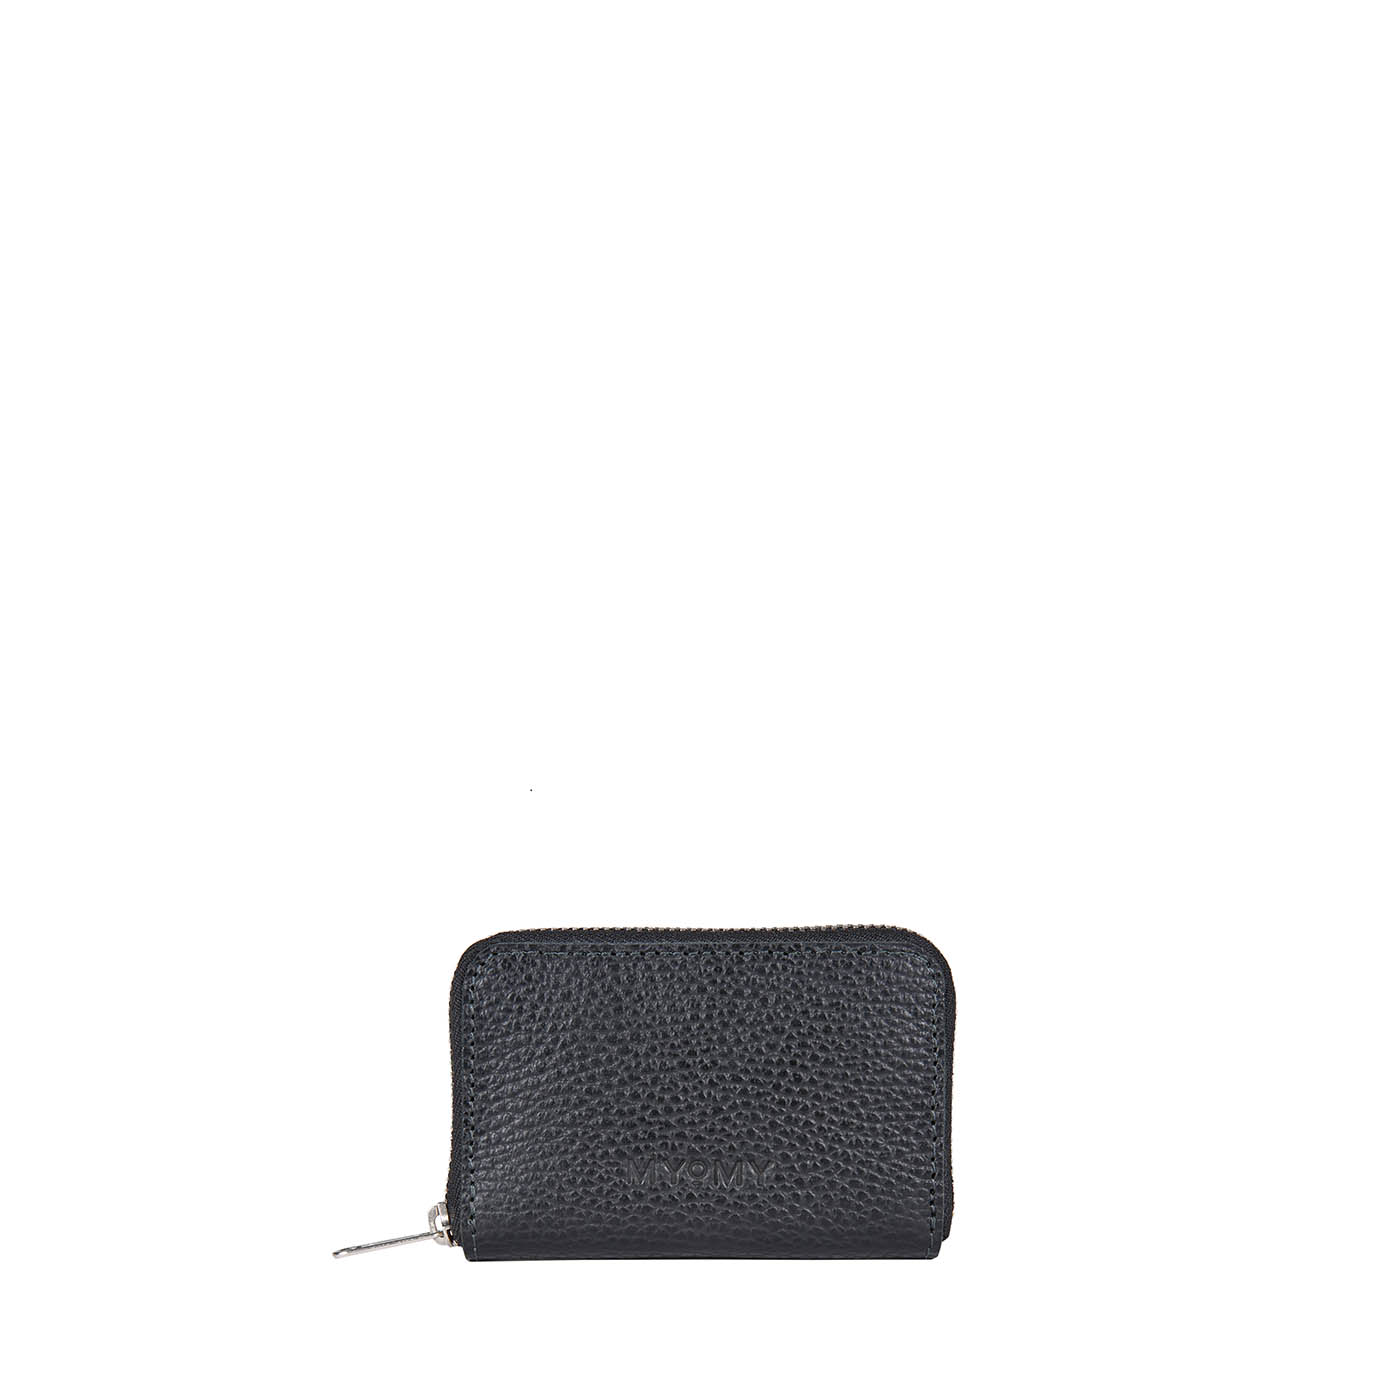 MY WALLET Small – rambler black